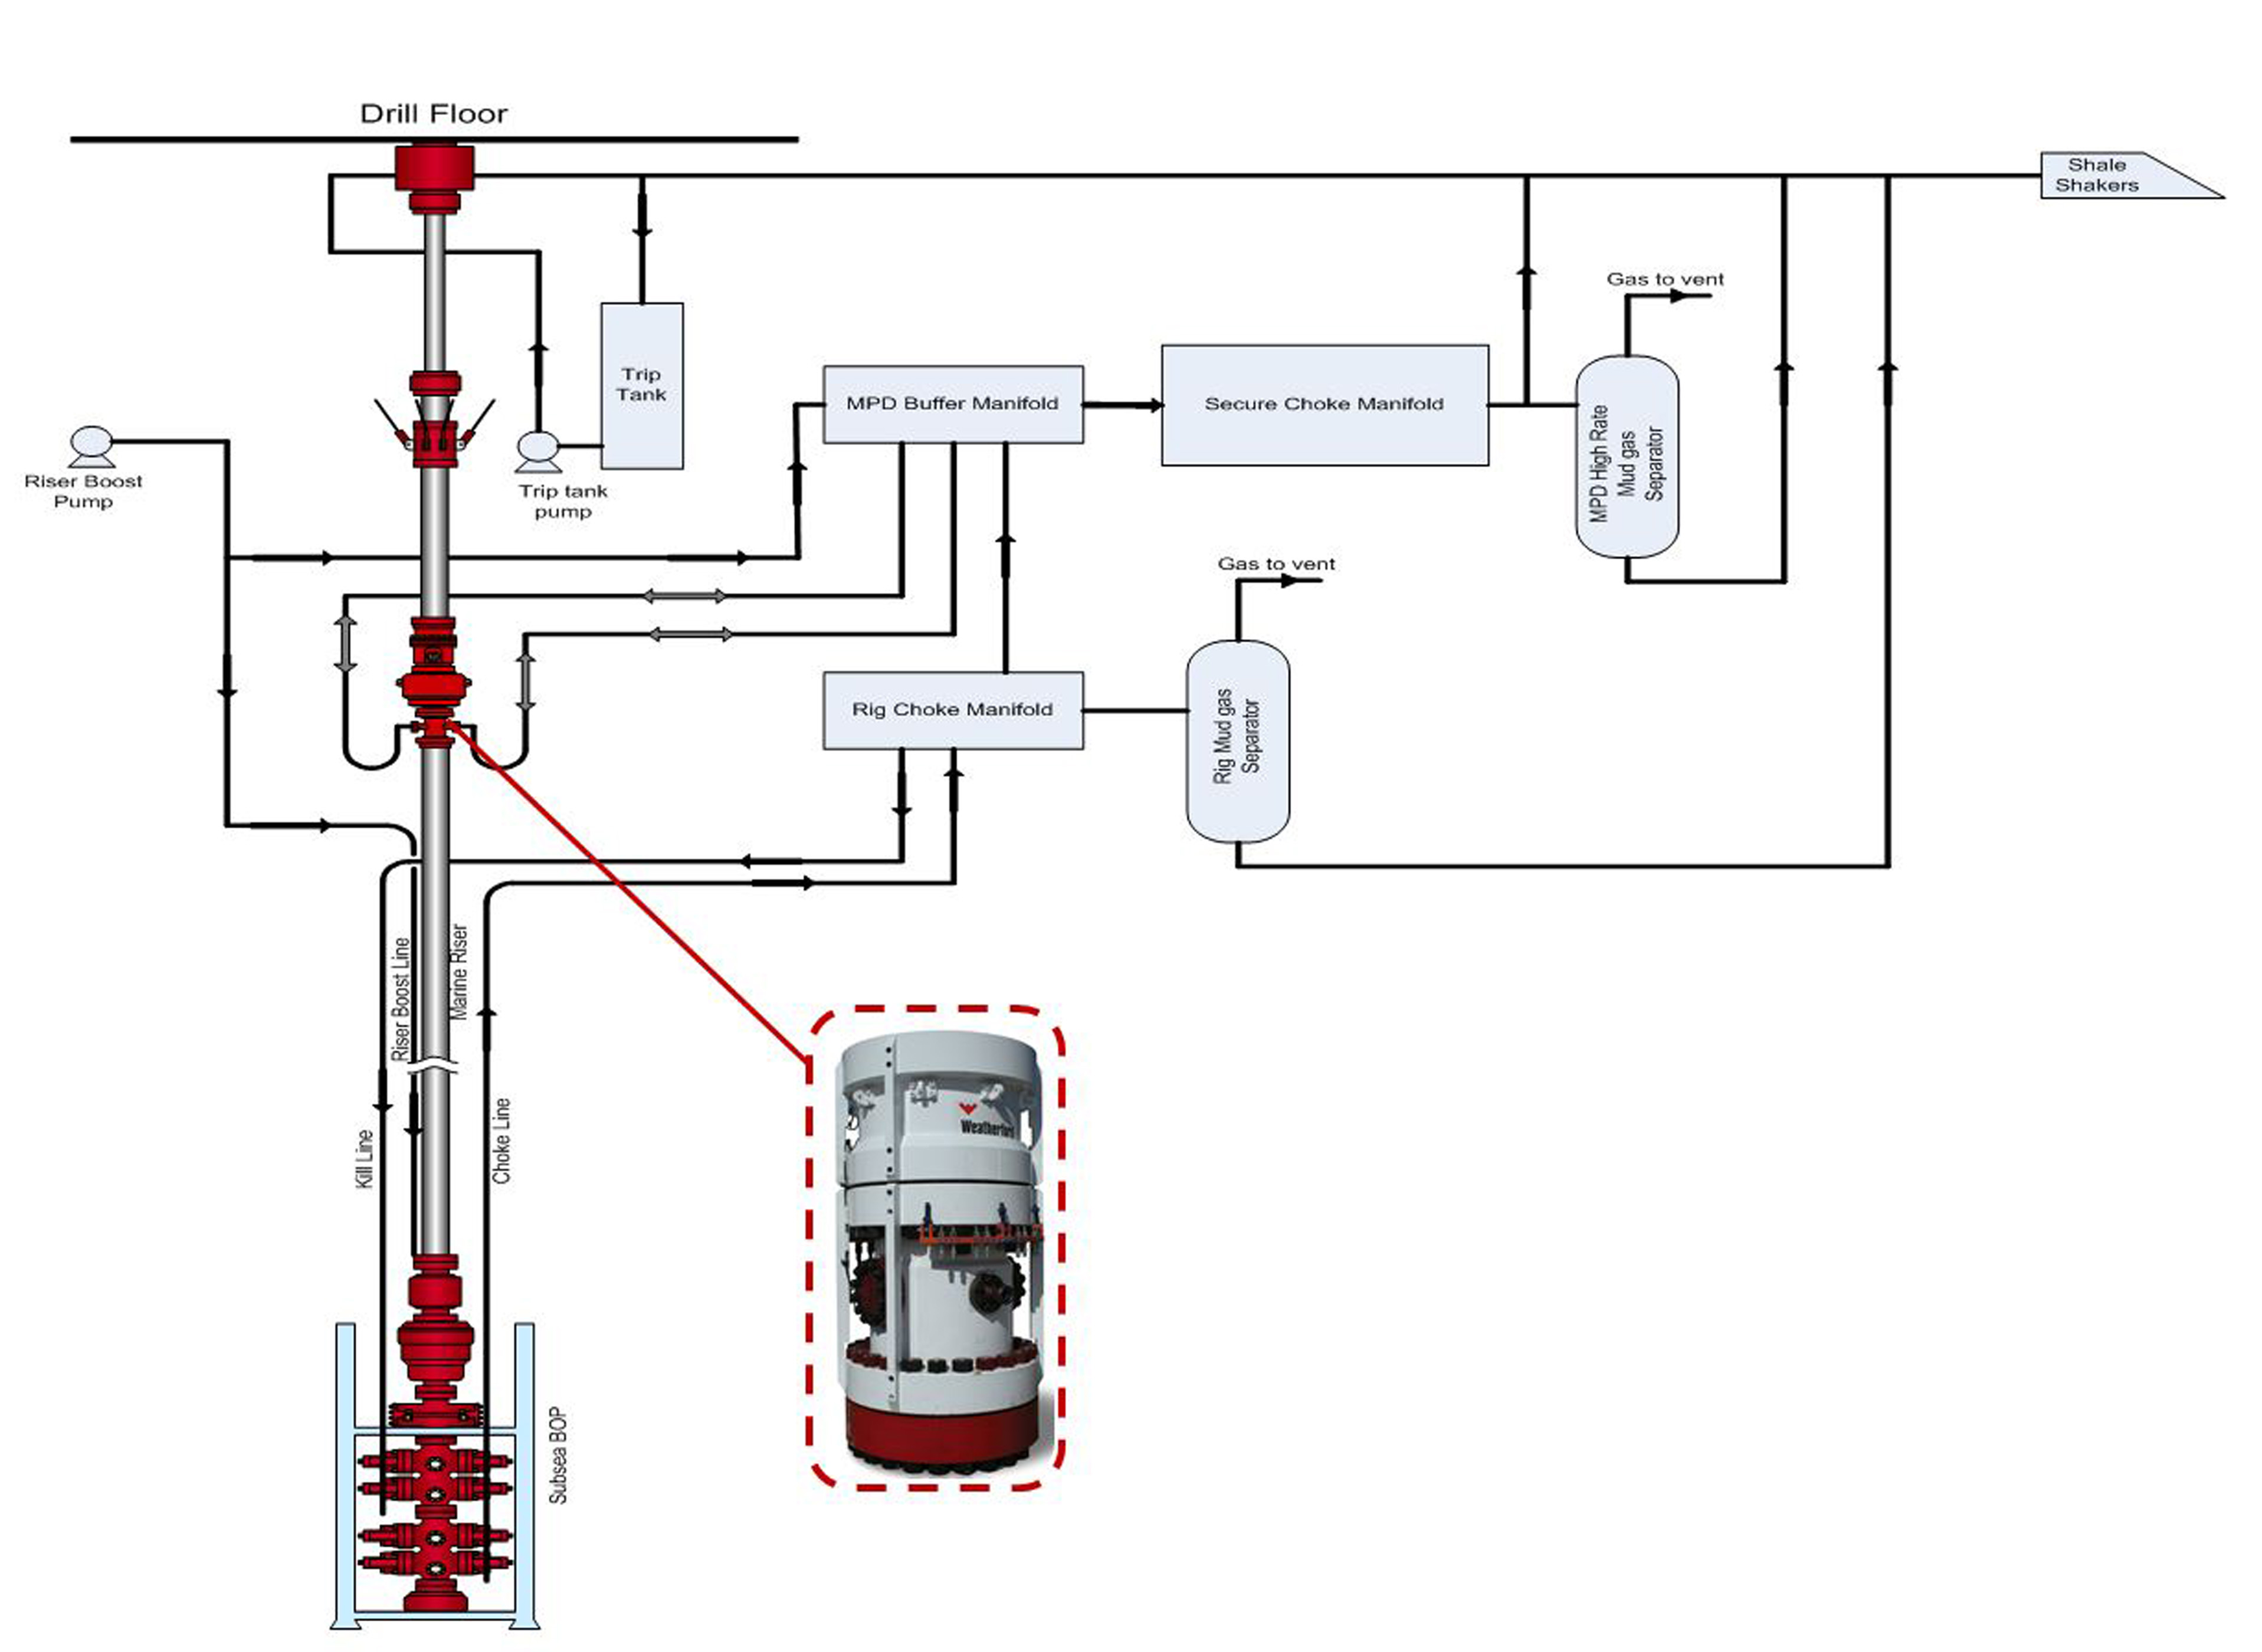 oil rig diagram service entrance panel wiring manifold line free engine image for